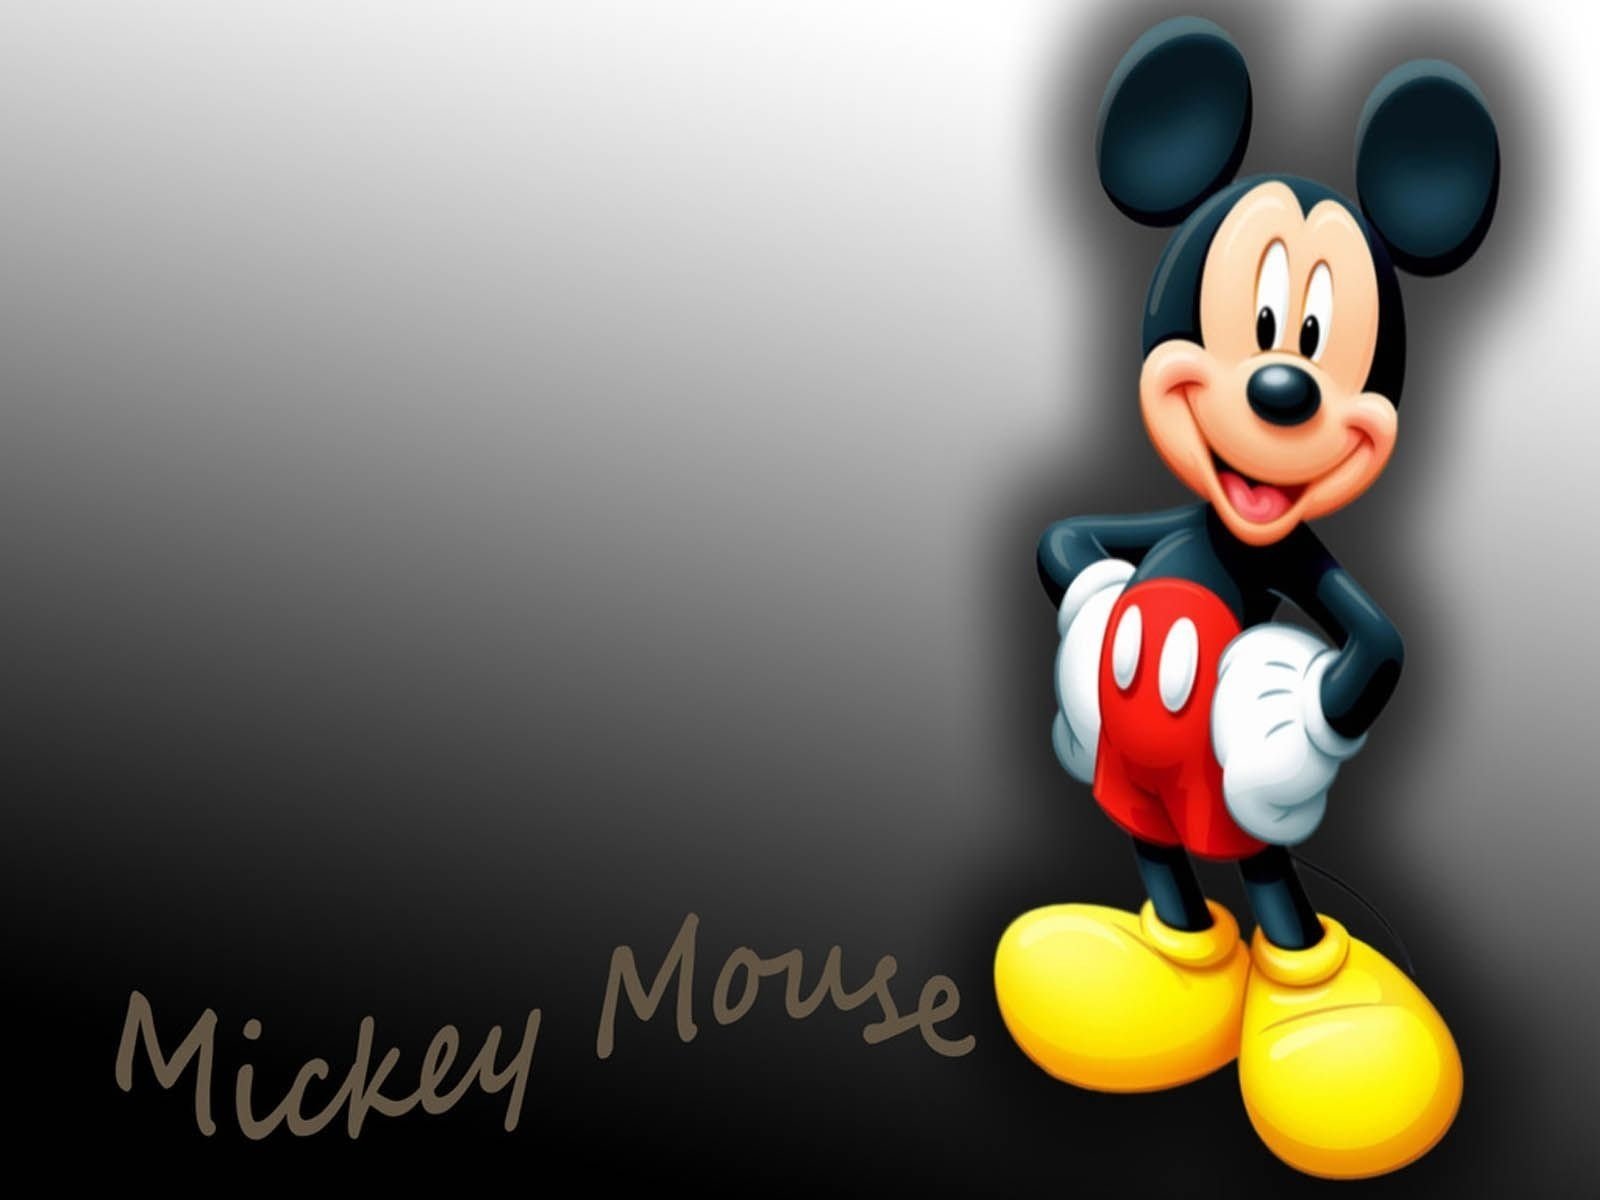 mickey mouse backgrounds - wallpaper cave pertaining to mickey mouse